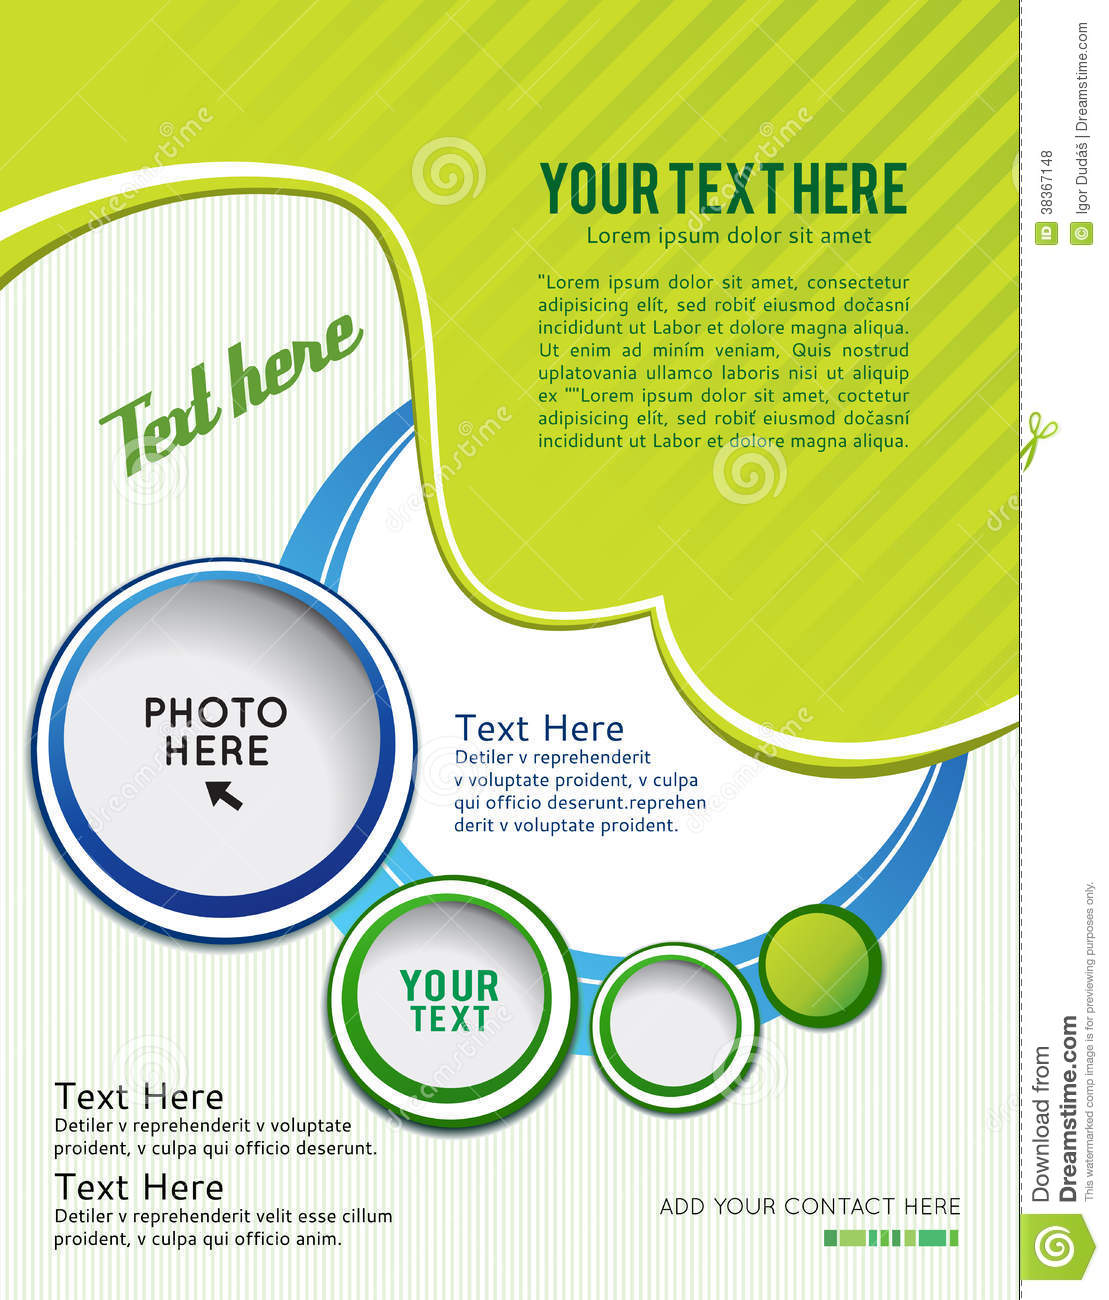 Brochure design royalty free stock photos image 38367148 for Background for brochure design